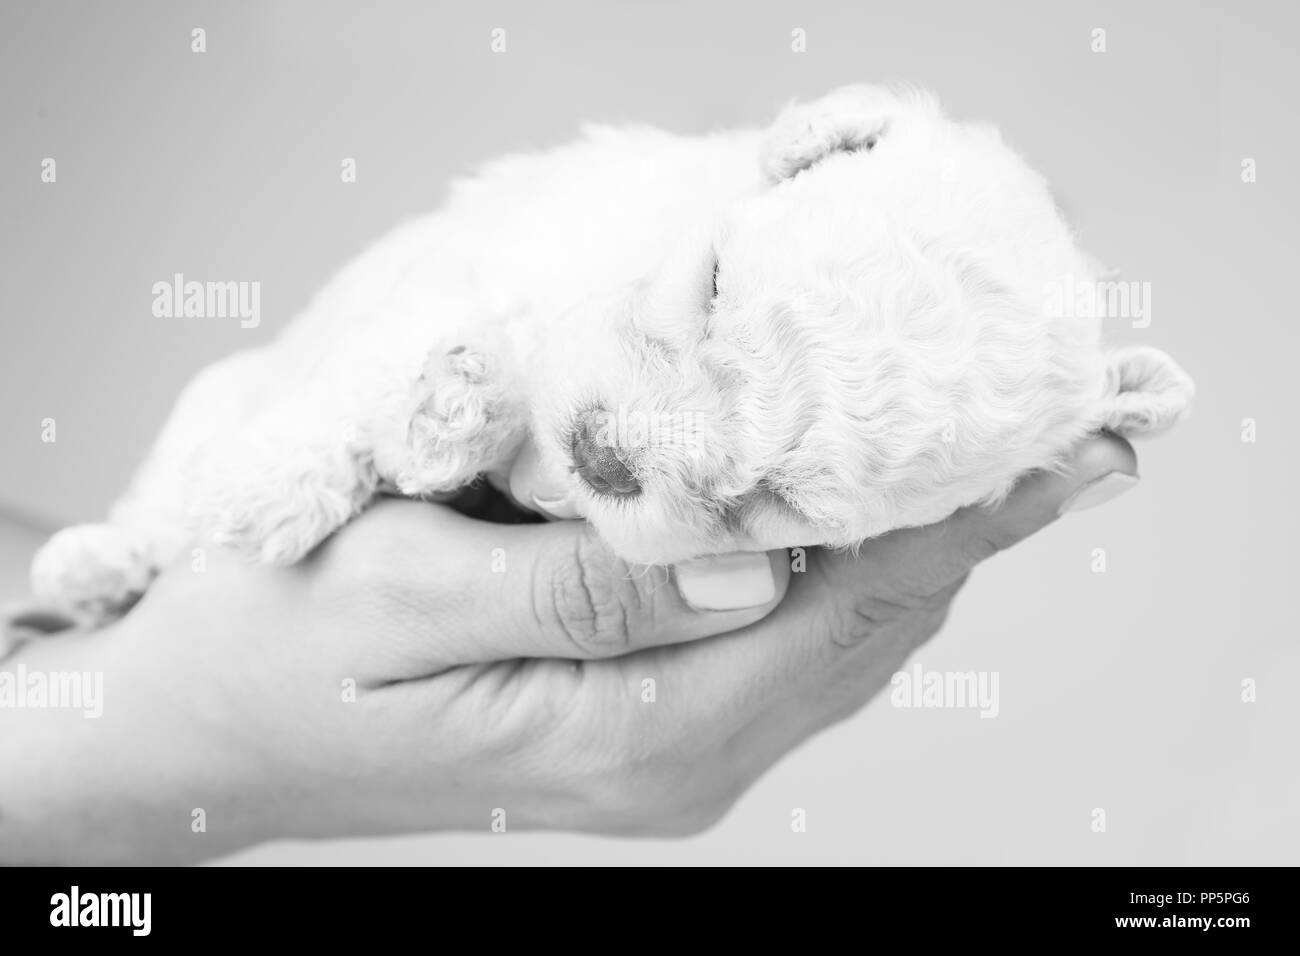 Hand holding a puppy isolated in grey background. - Stock Image